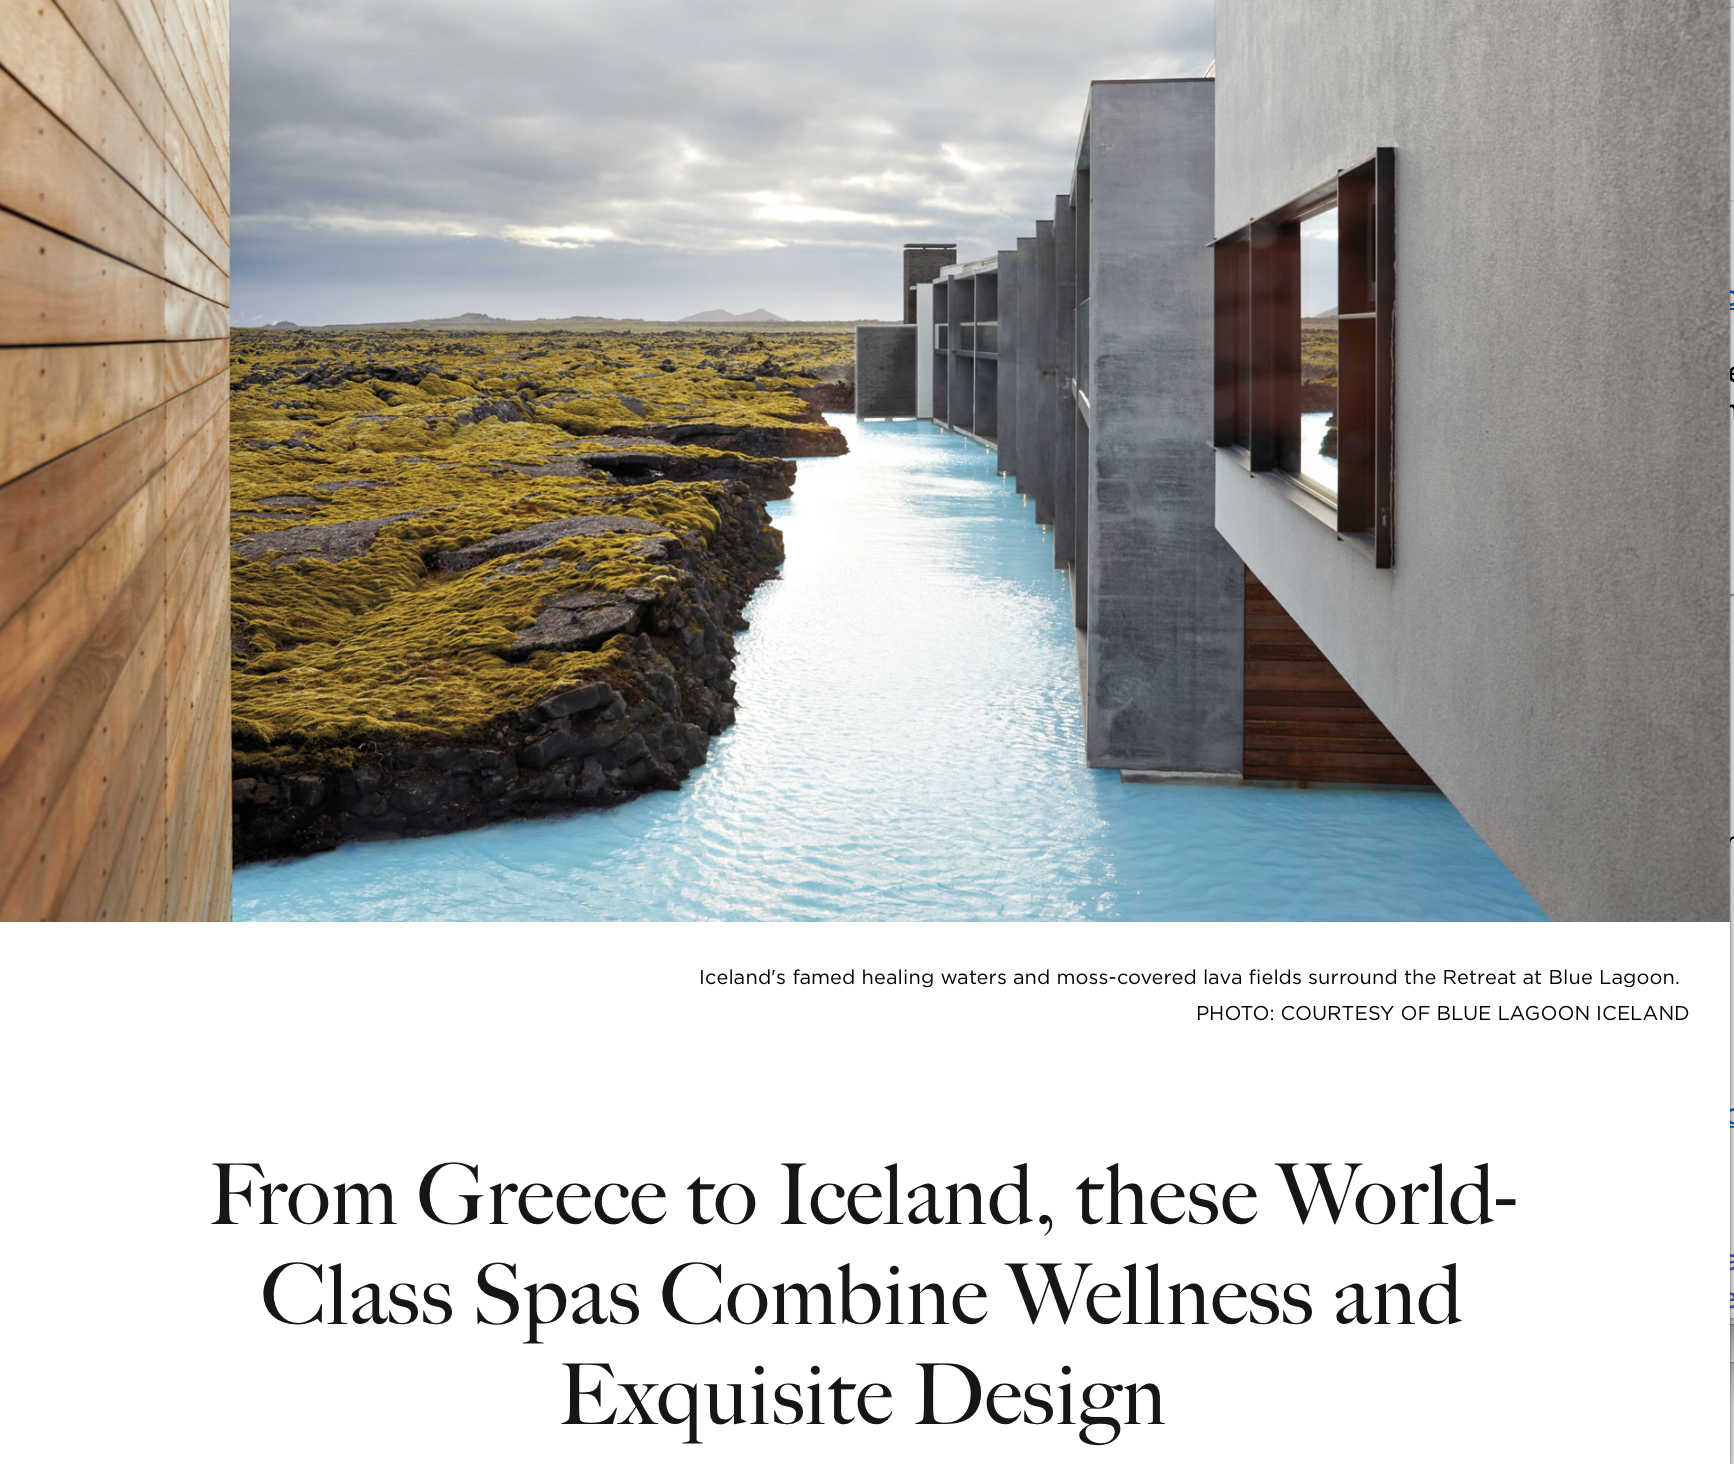 Top Luxury Spas, Galerie Magazine, Fall 2020, Rima Suqi